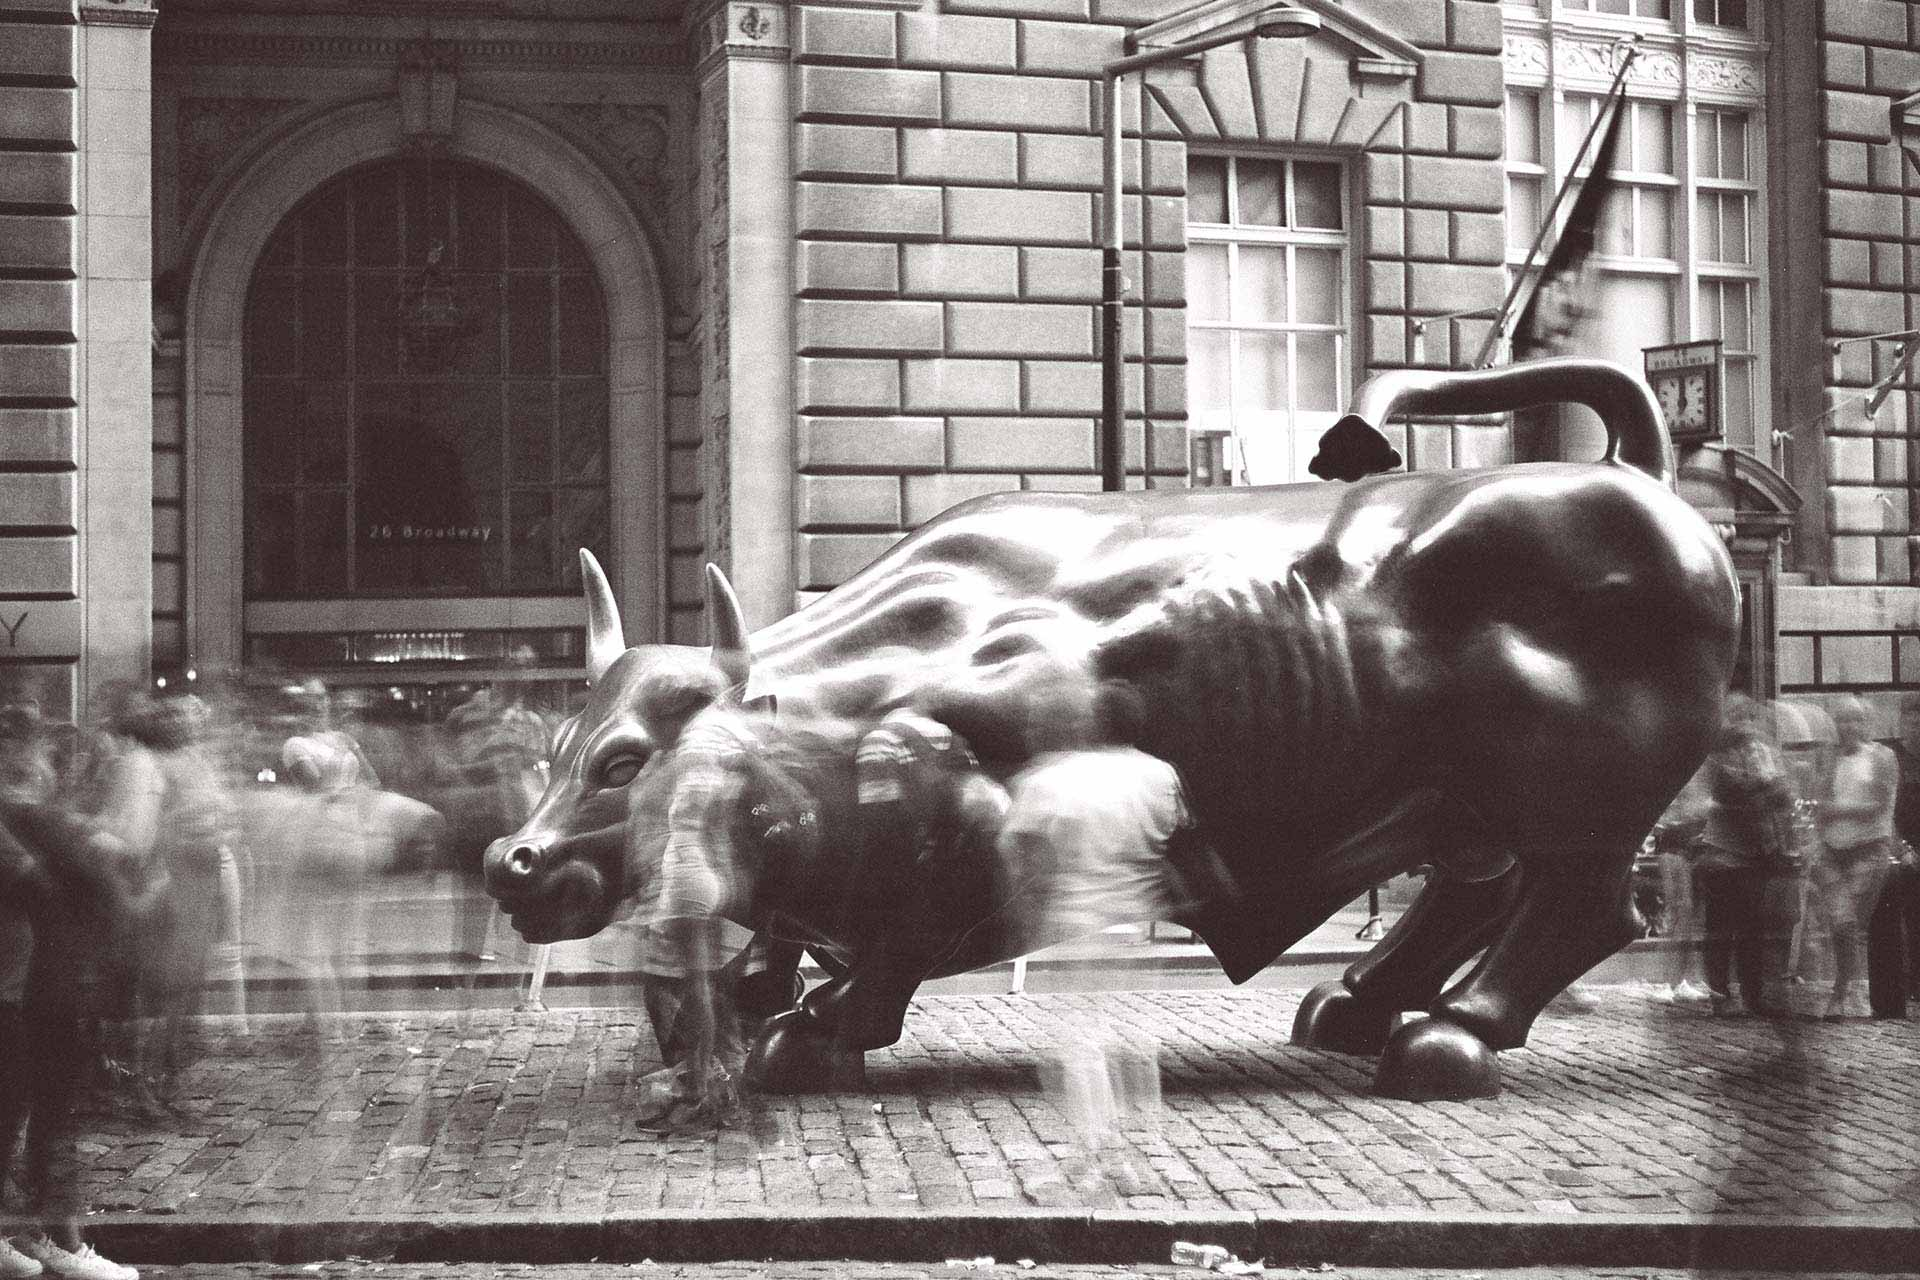 Photo of Wall St bull, long exposure